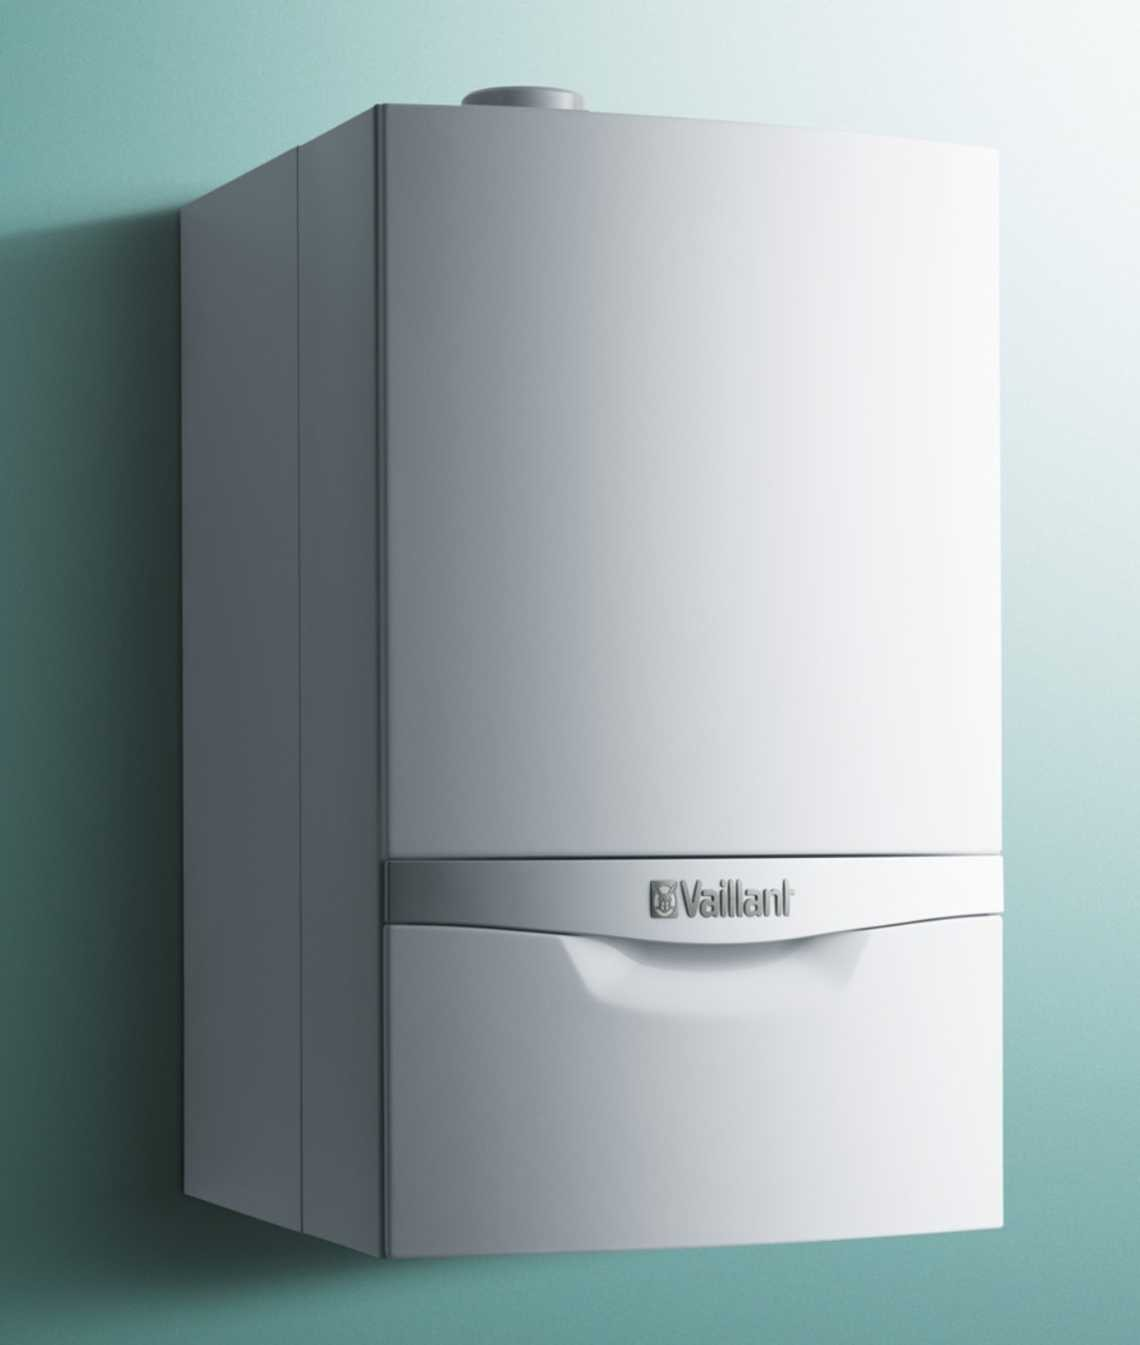 Газовий котел Vaillant ecoTEC Plus VU 656/5-5 (H-INT IV) - Теплоцентр